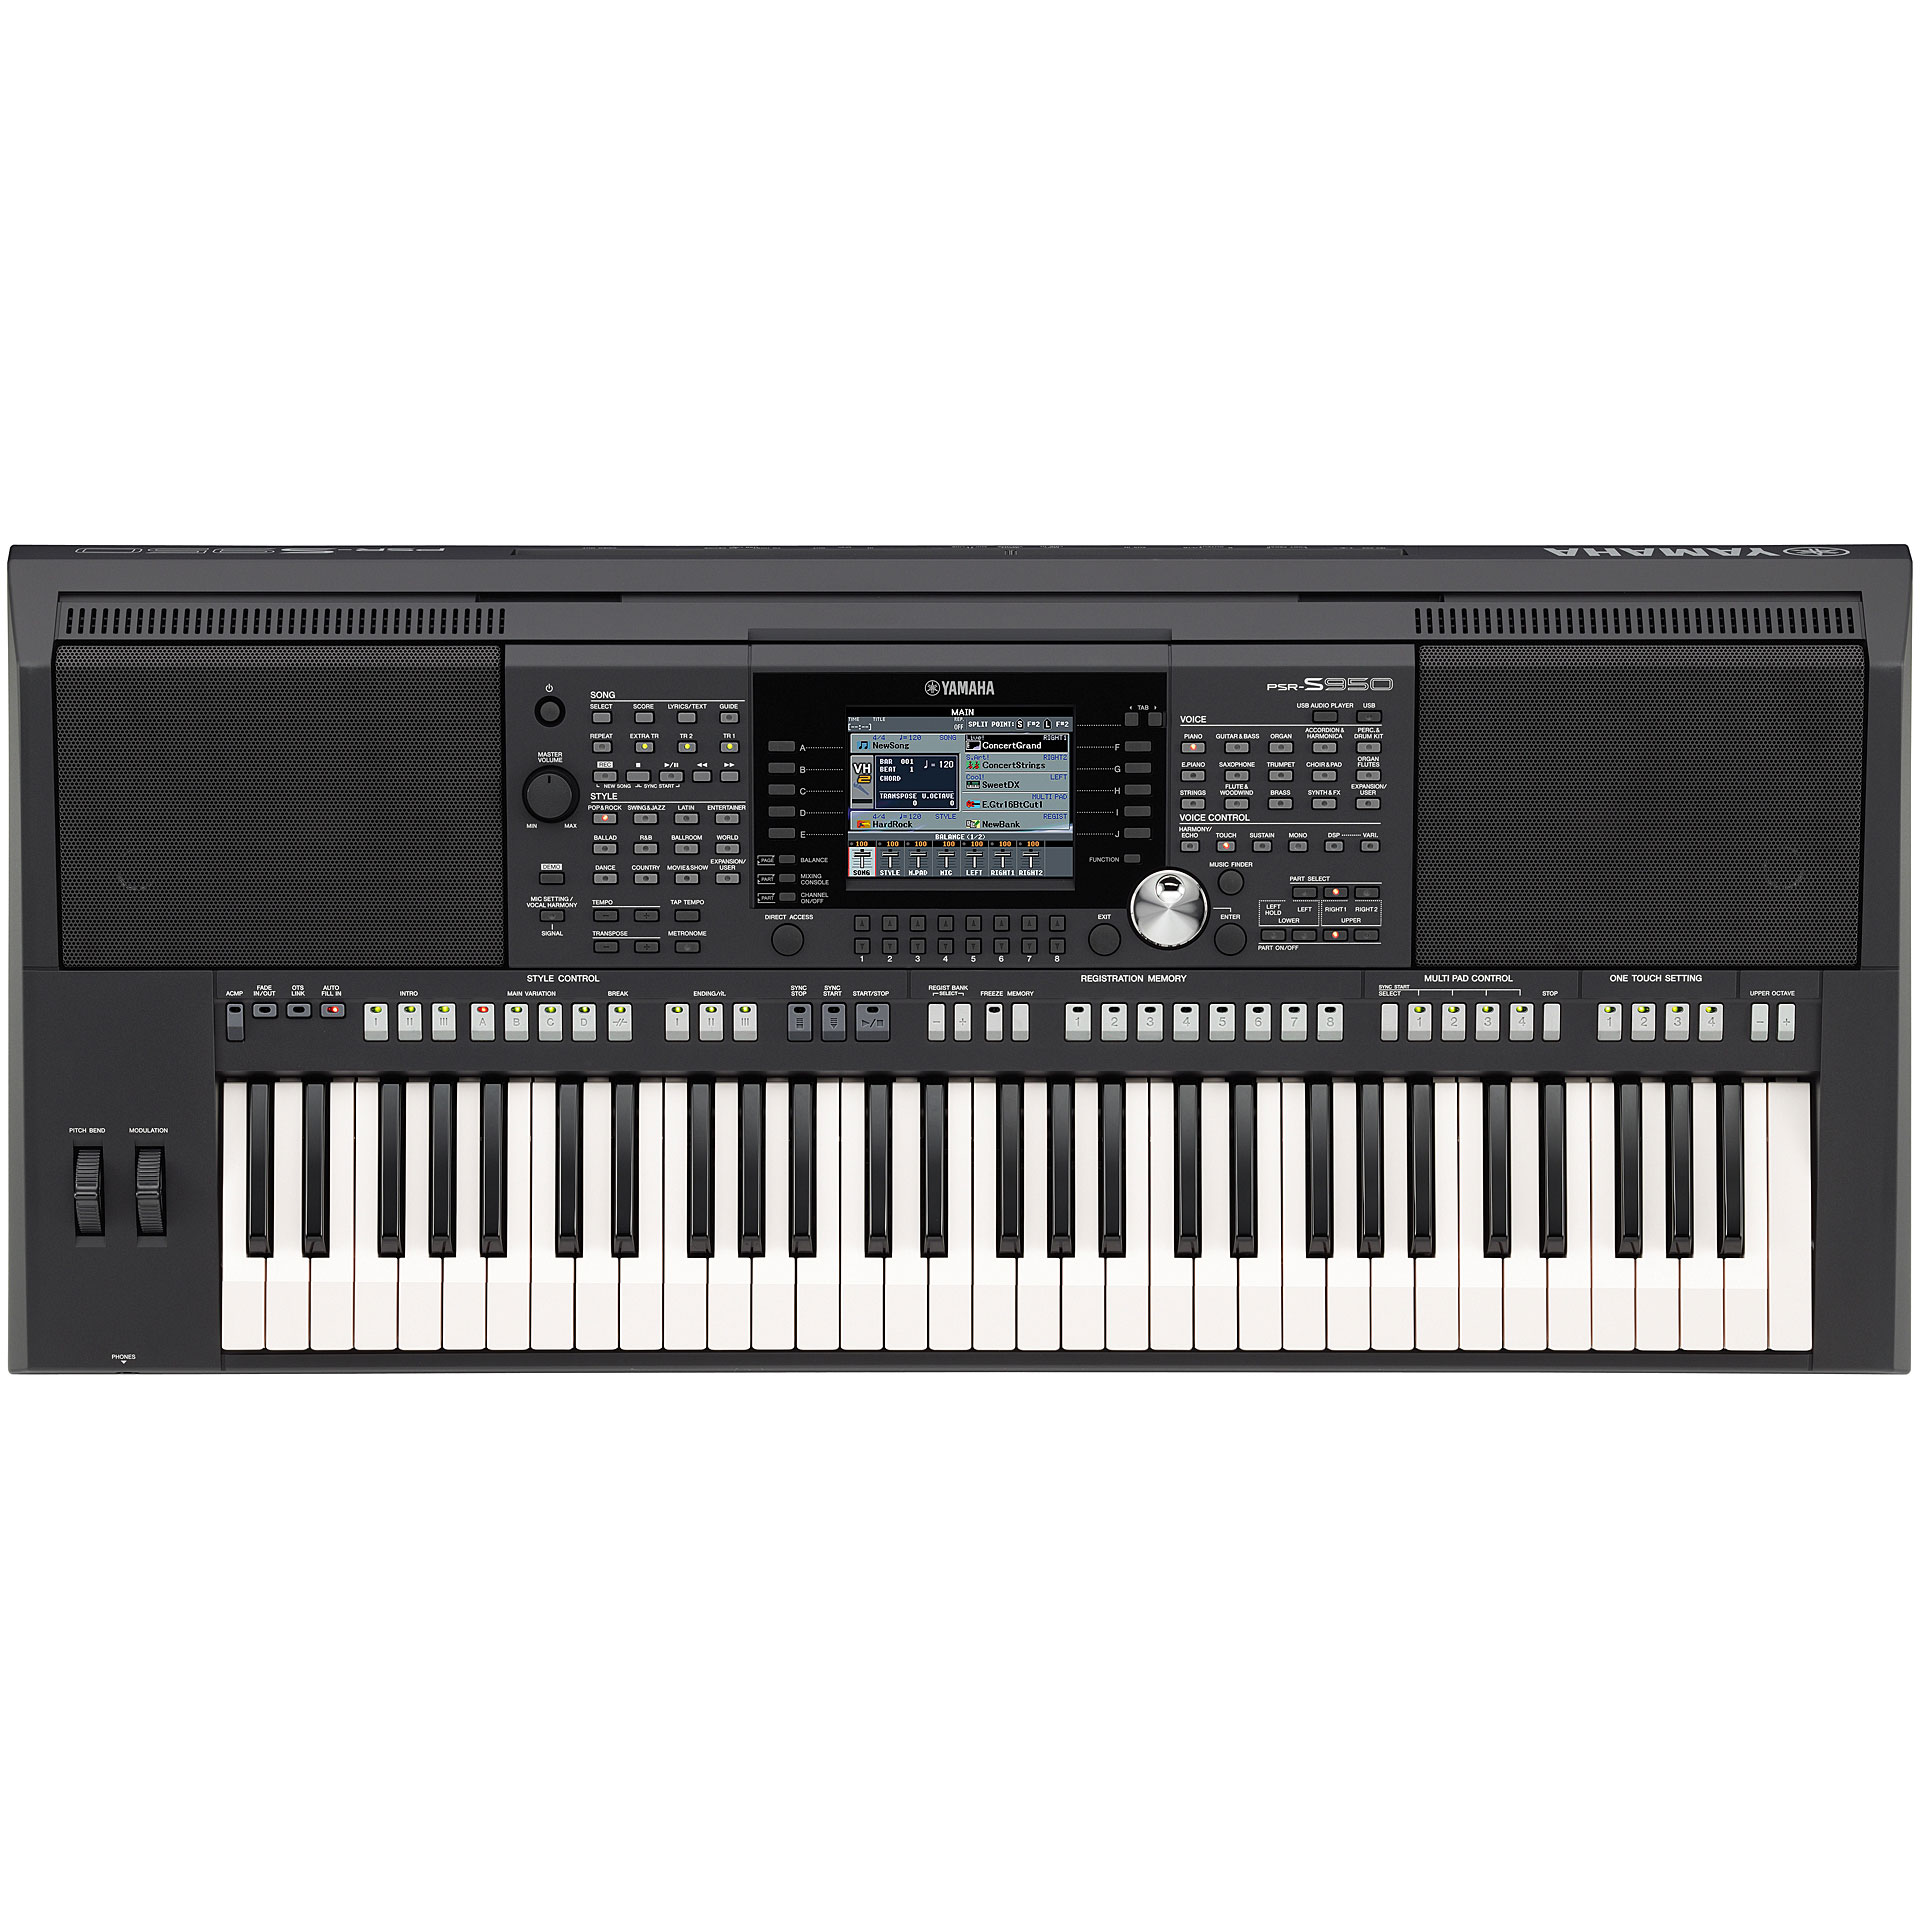 yamaha psr s950 keyboard. Black Bedroom Furniture Sets. Home Design Ideas